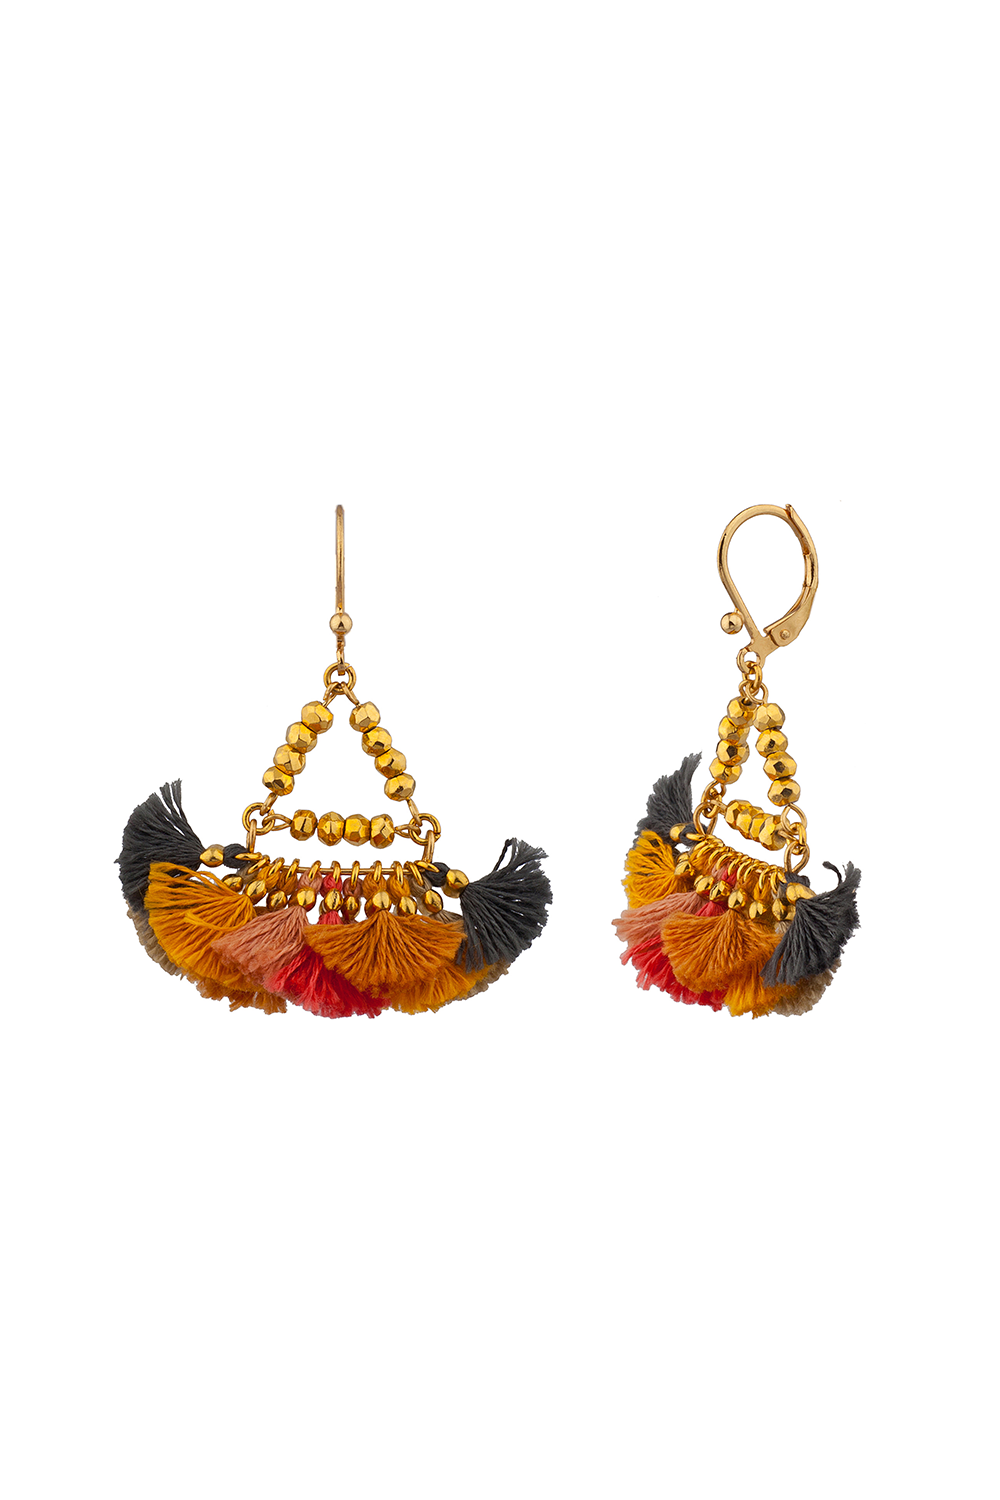 Lilu Earrings in Harvest